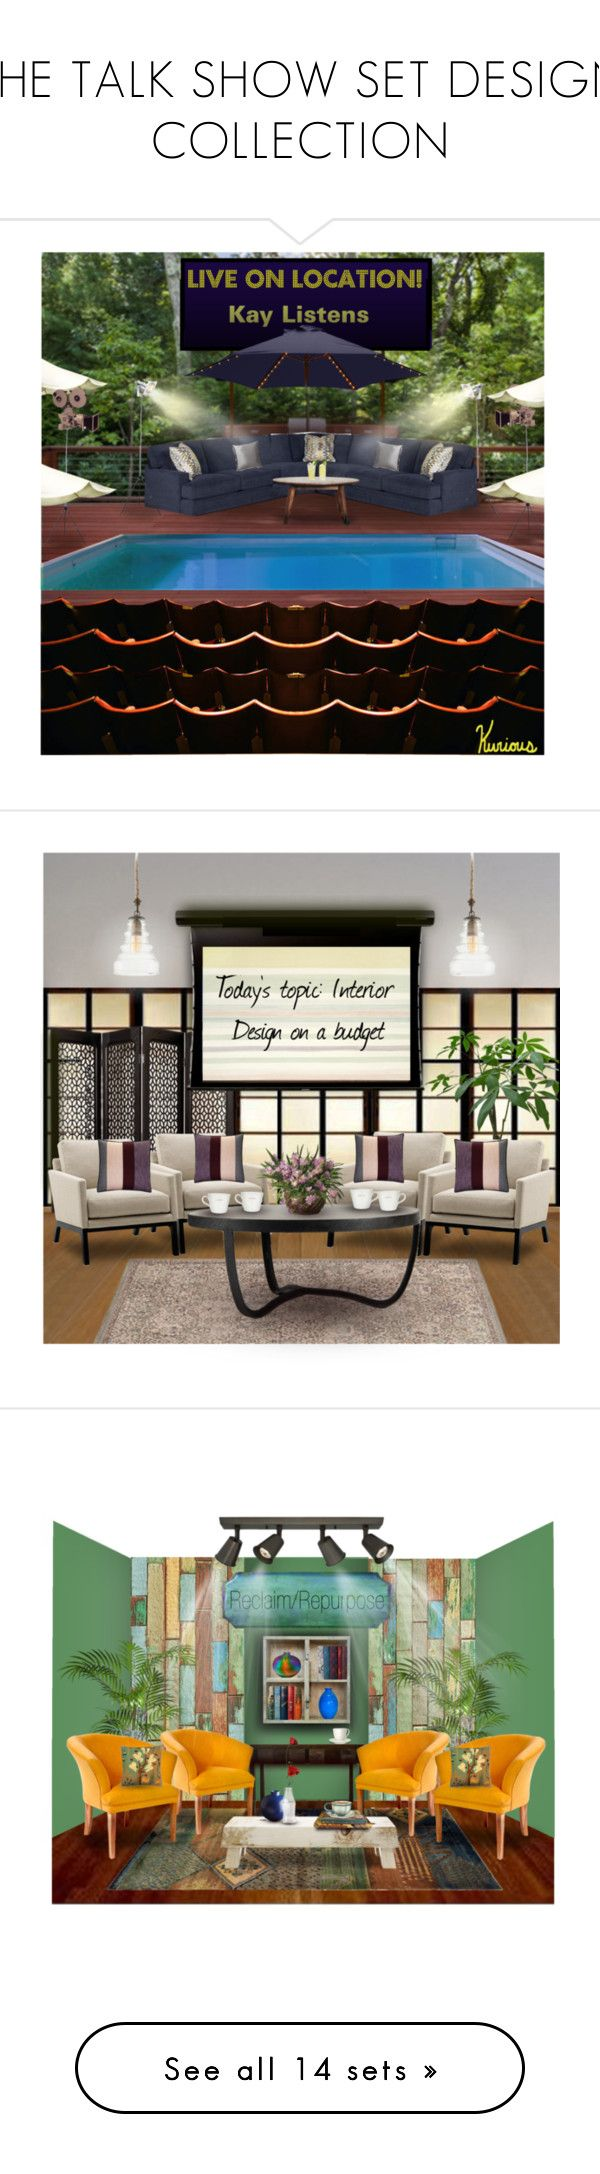 """THE TALK SHOW SET DESIGN COLLECTION"" by arjanadesign ❤ liked on Polyvore featuring interior, interiors, interior design, home, home decor, interior decorating, H&M, Cost Plus World Market, Home Decorators Collection and Stellar Works"